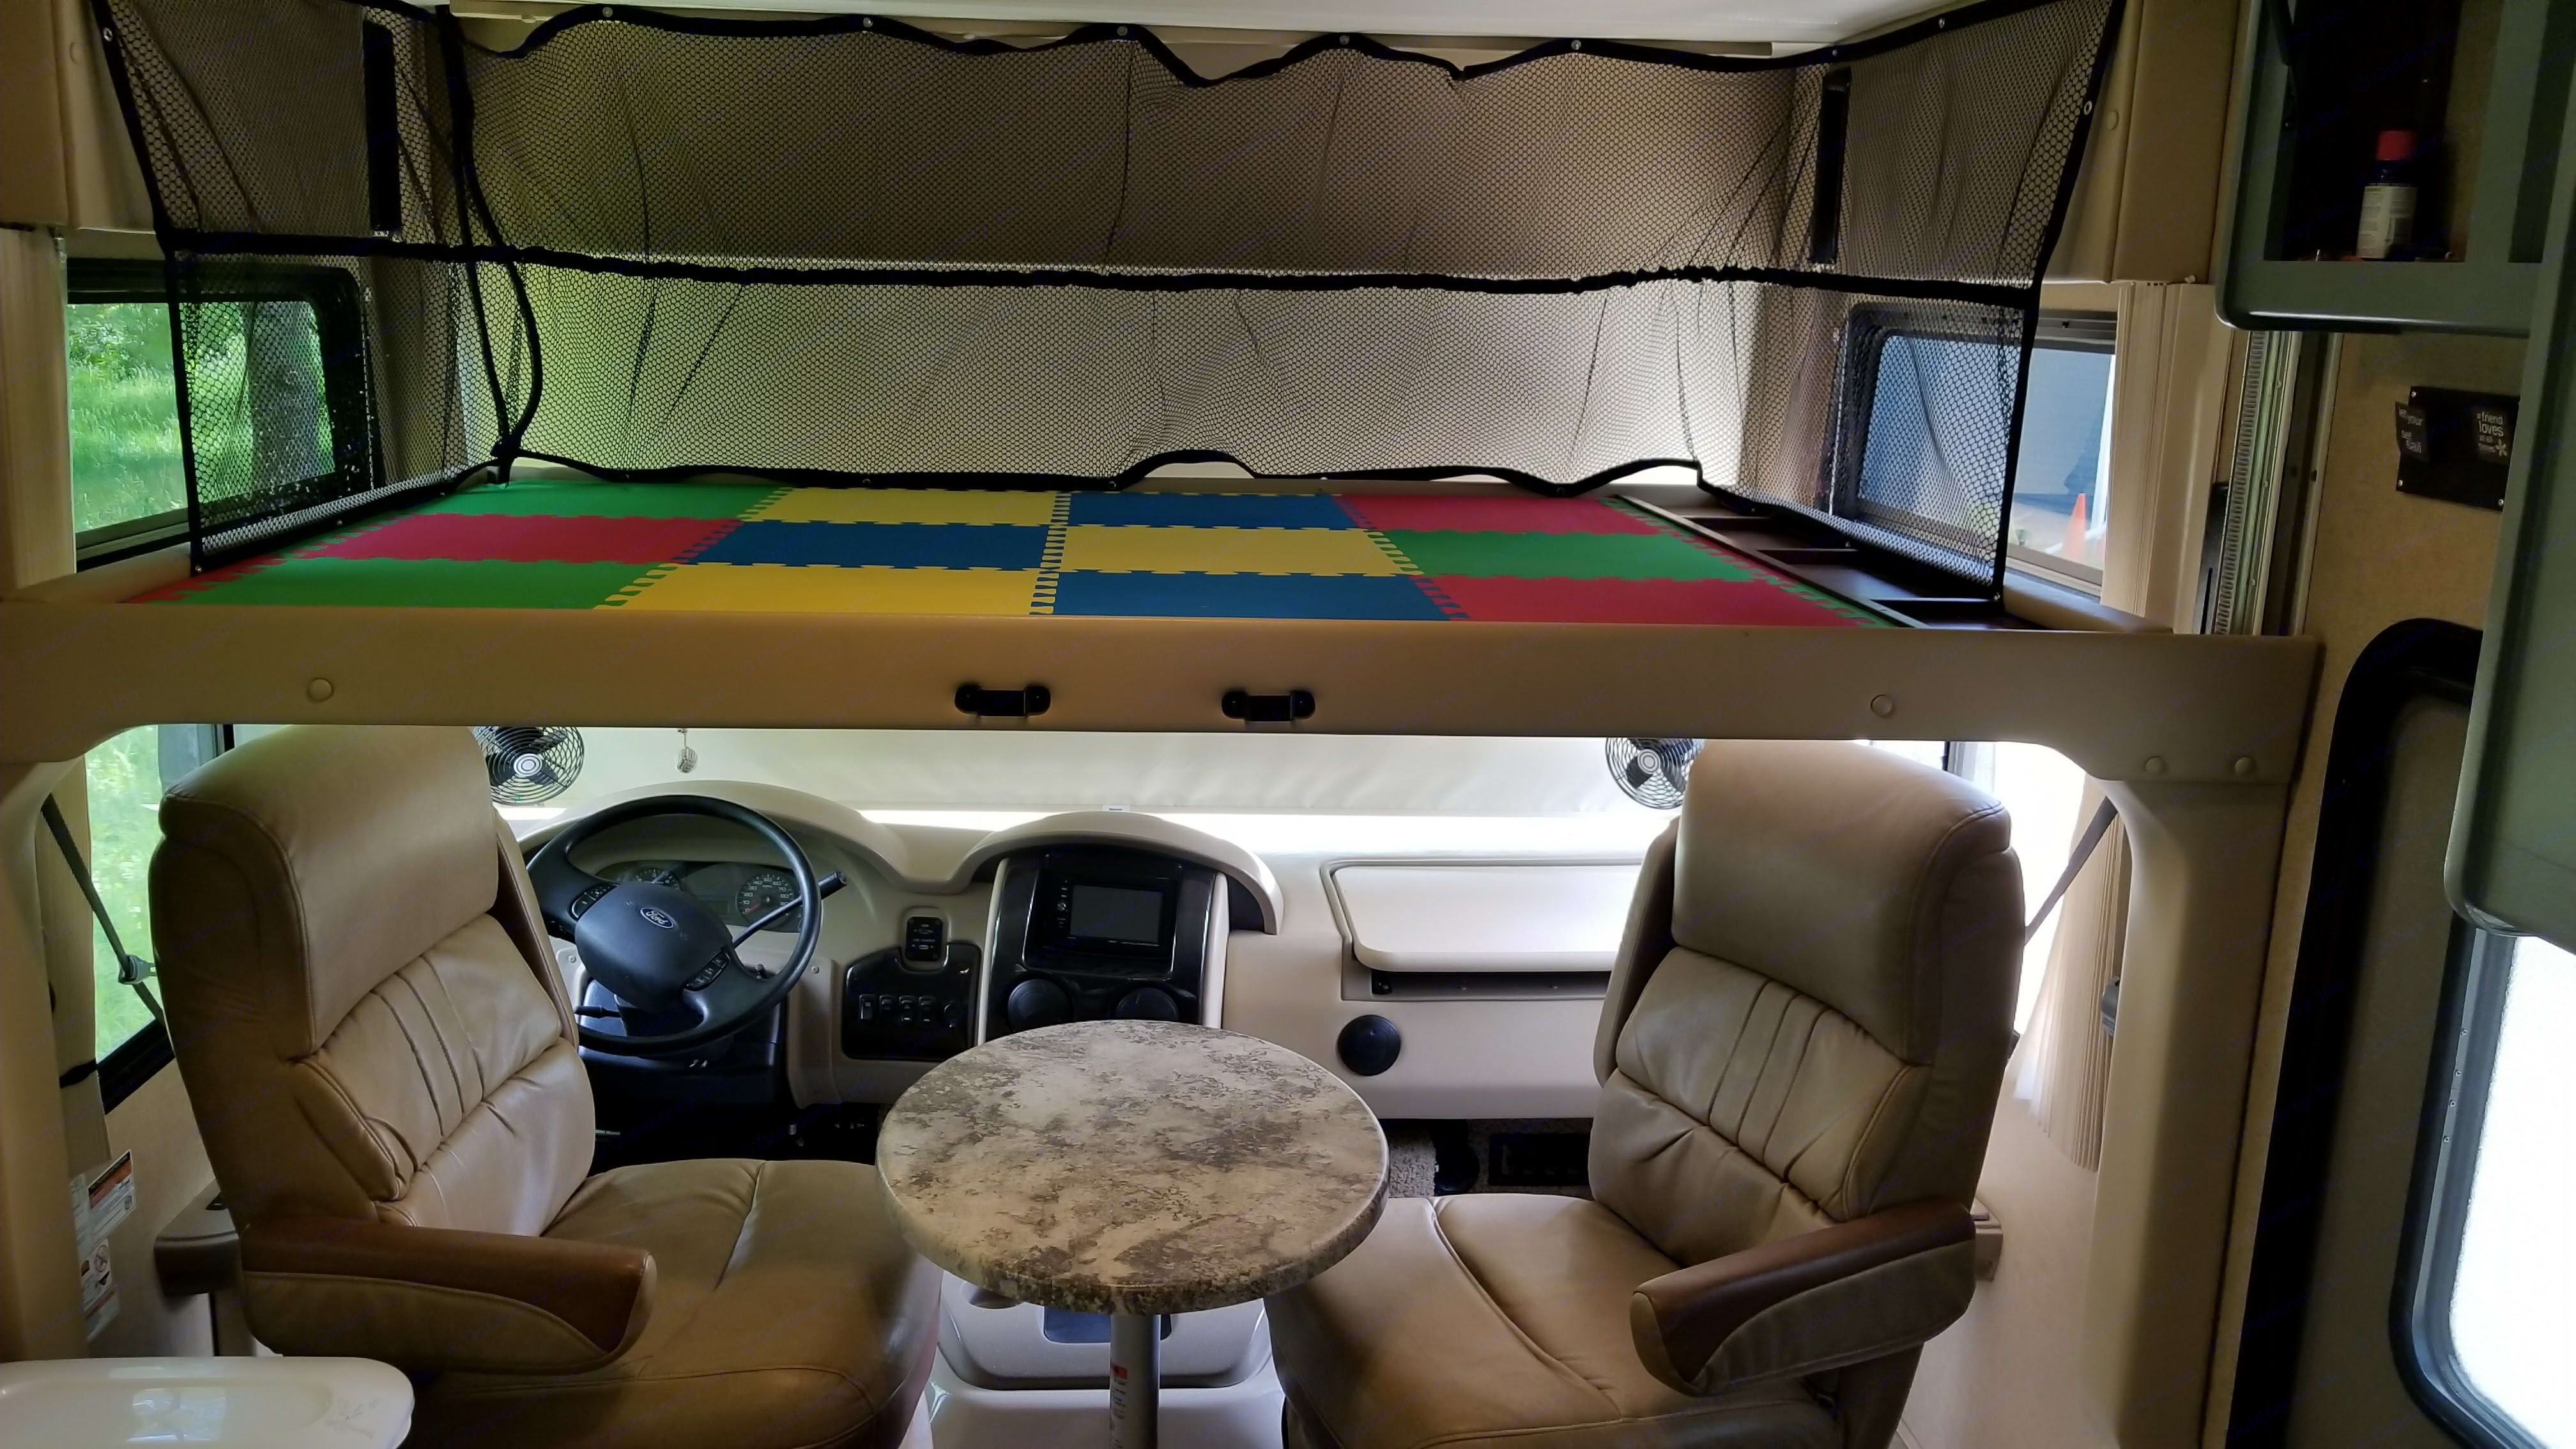 When the front bunk is down, it provides a sleeping platform for a full sized air mattress. Thor Motor Coach Miramar 2015